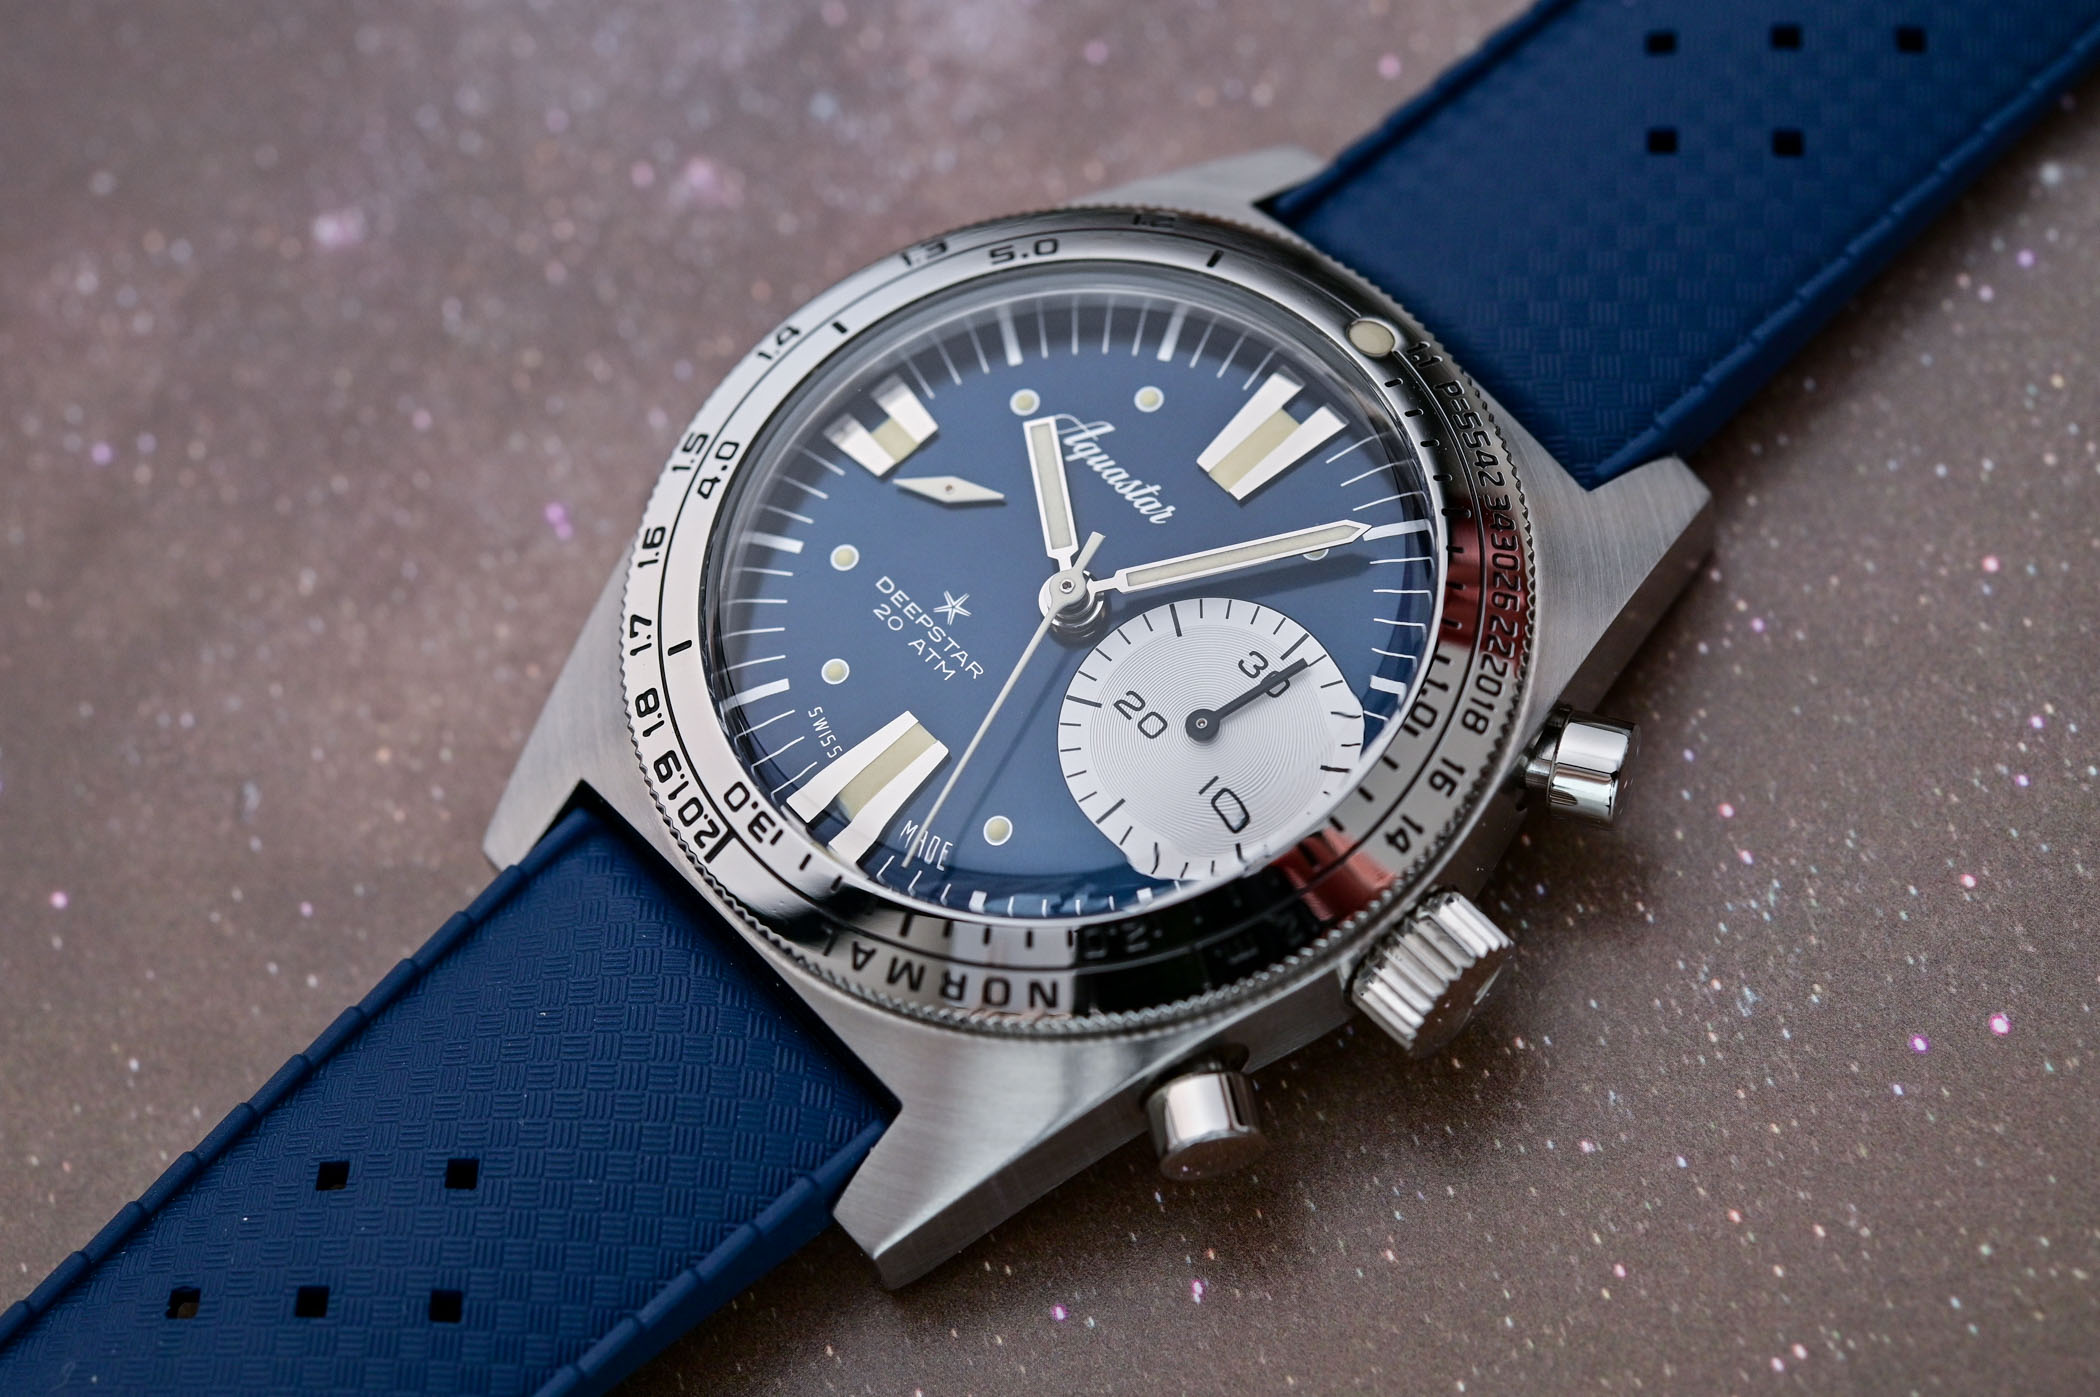 Aquastar Deepstar Chronograph Re-Edition